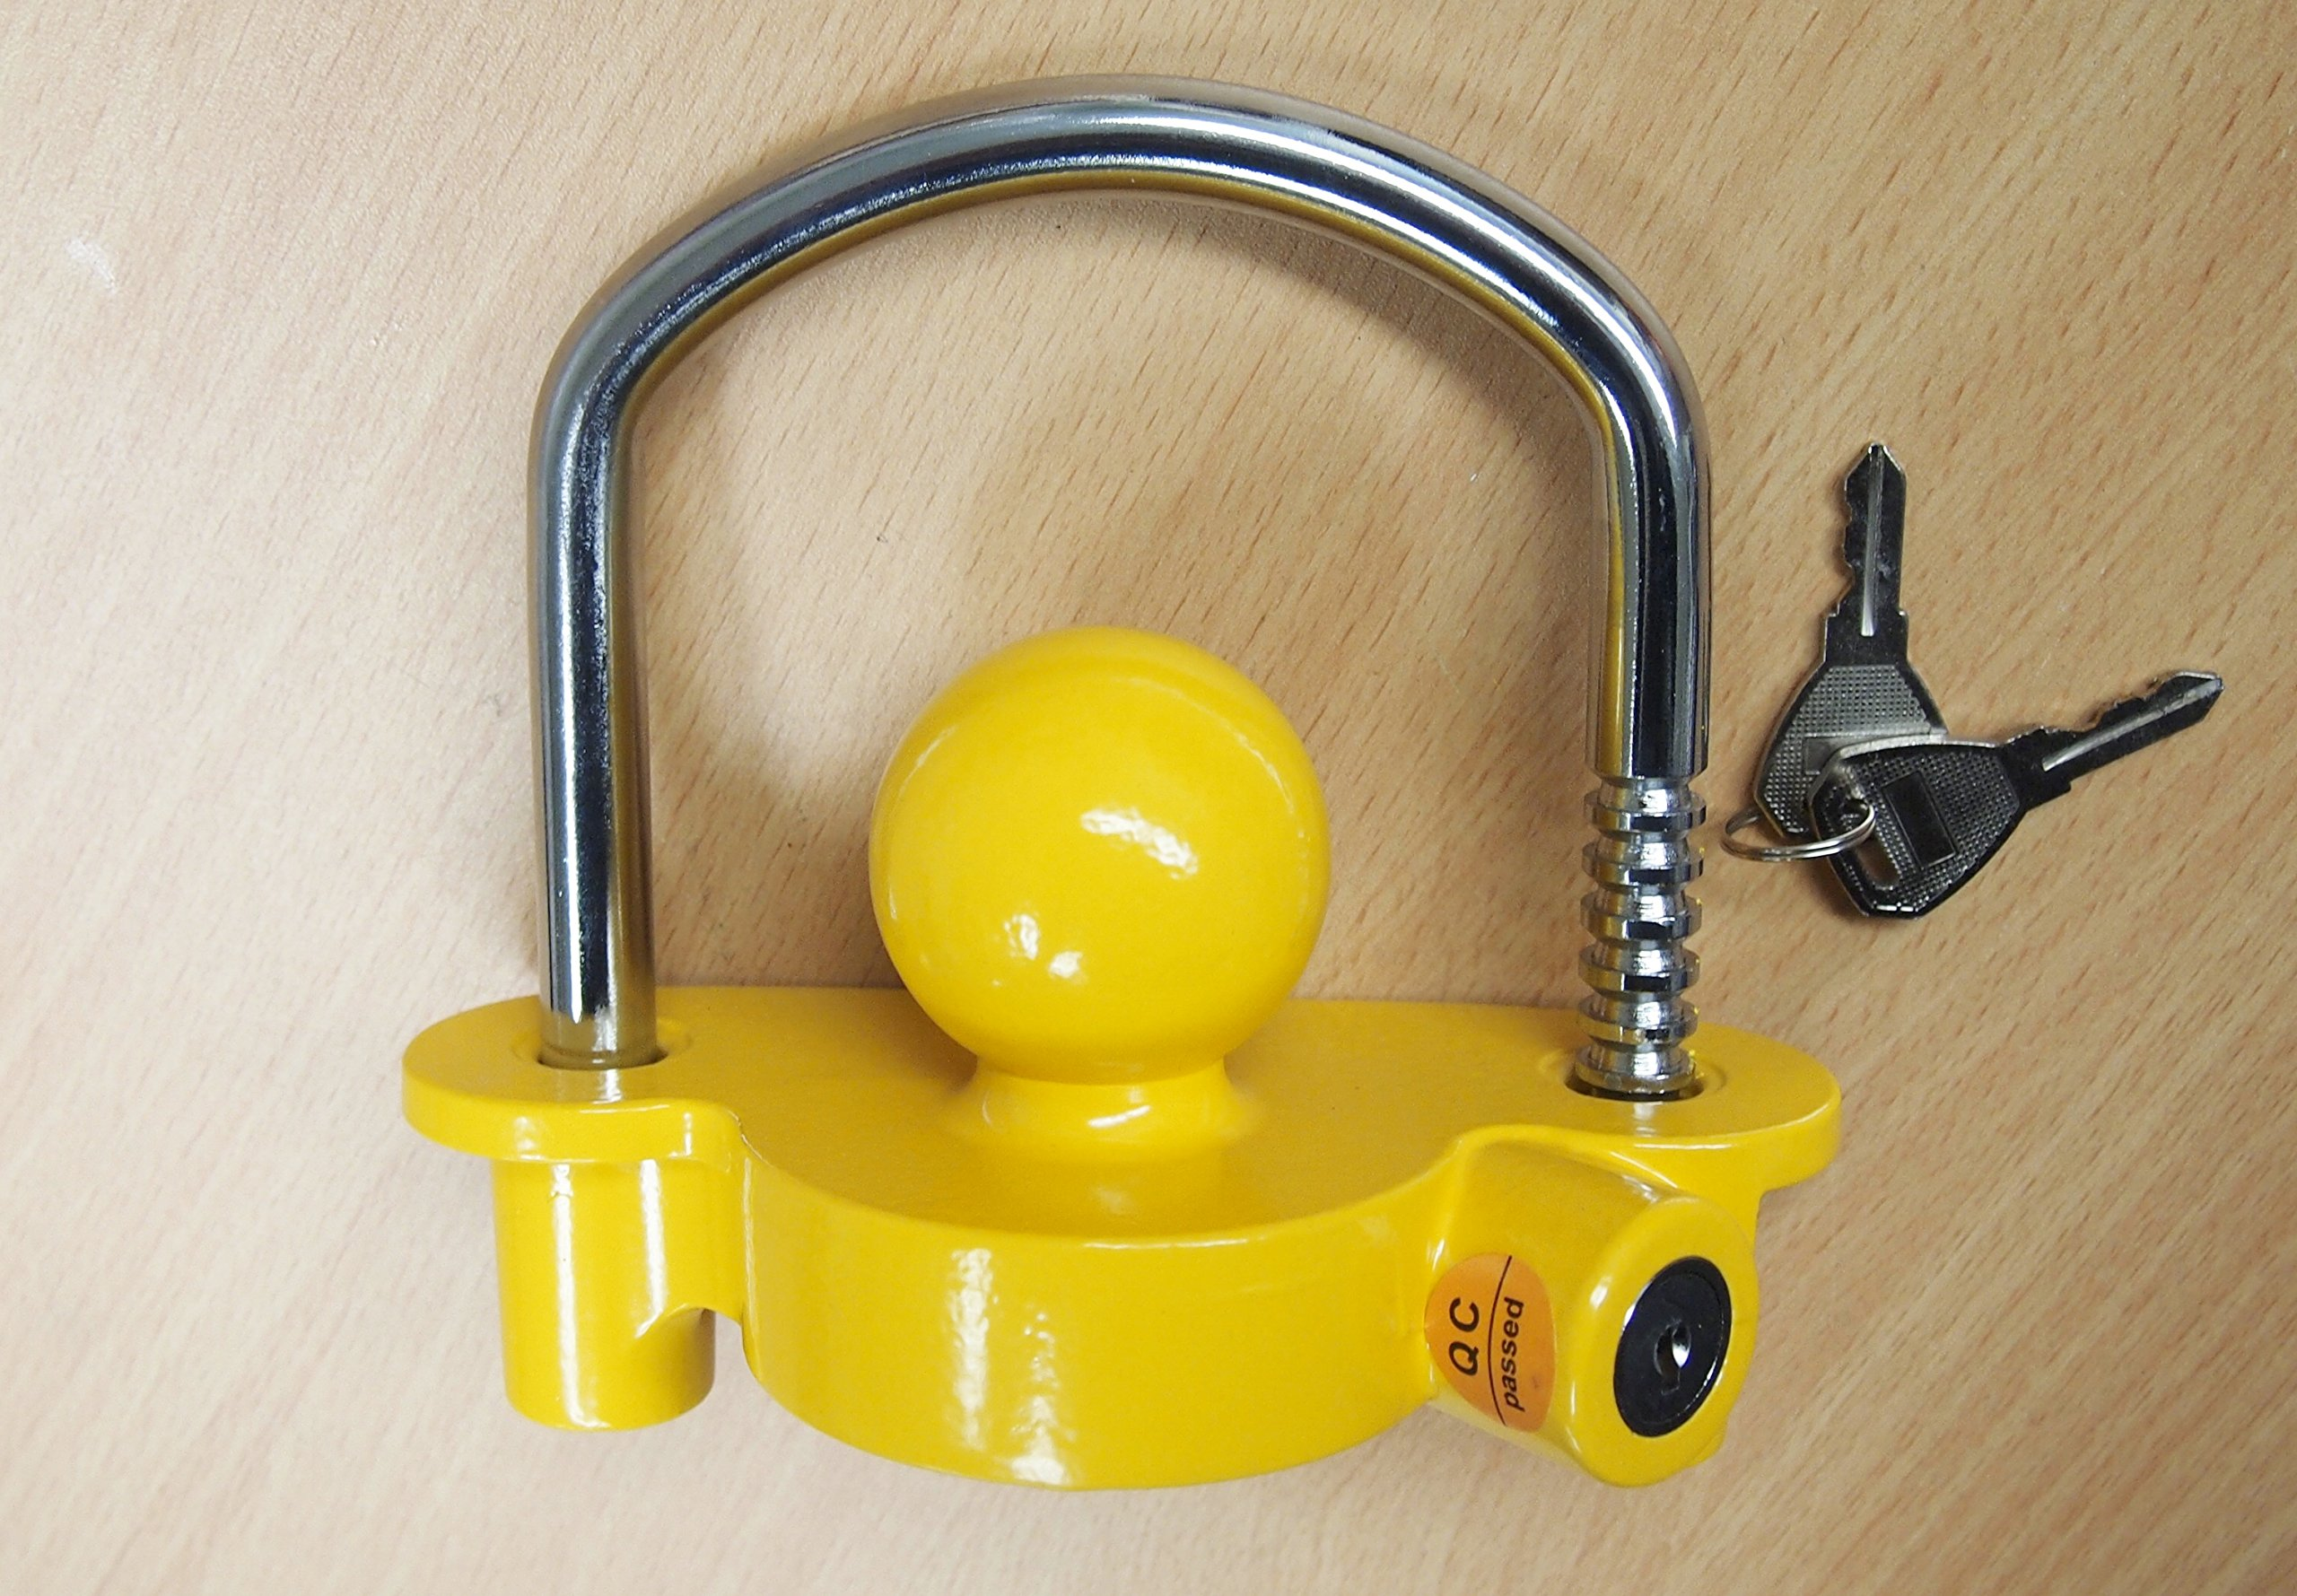 Universal Heavy Duty Tow Trailer Coupler Lock fits 1-7/8'', 2'', and 2-5/16''